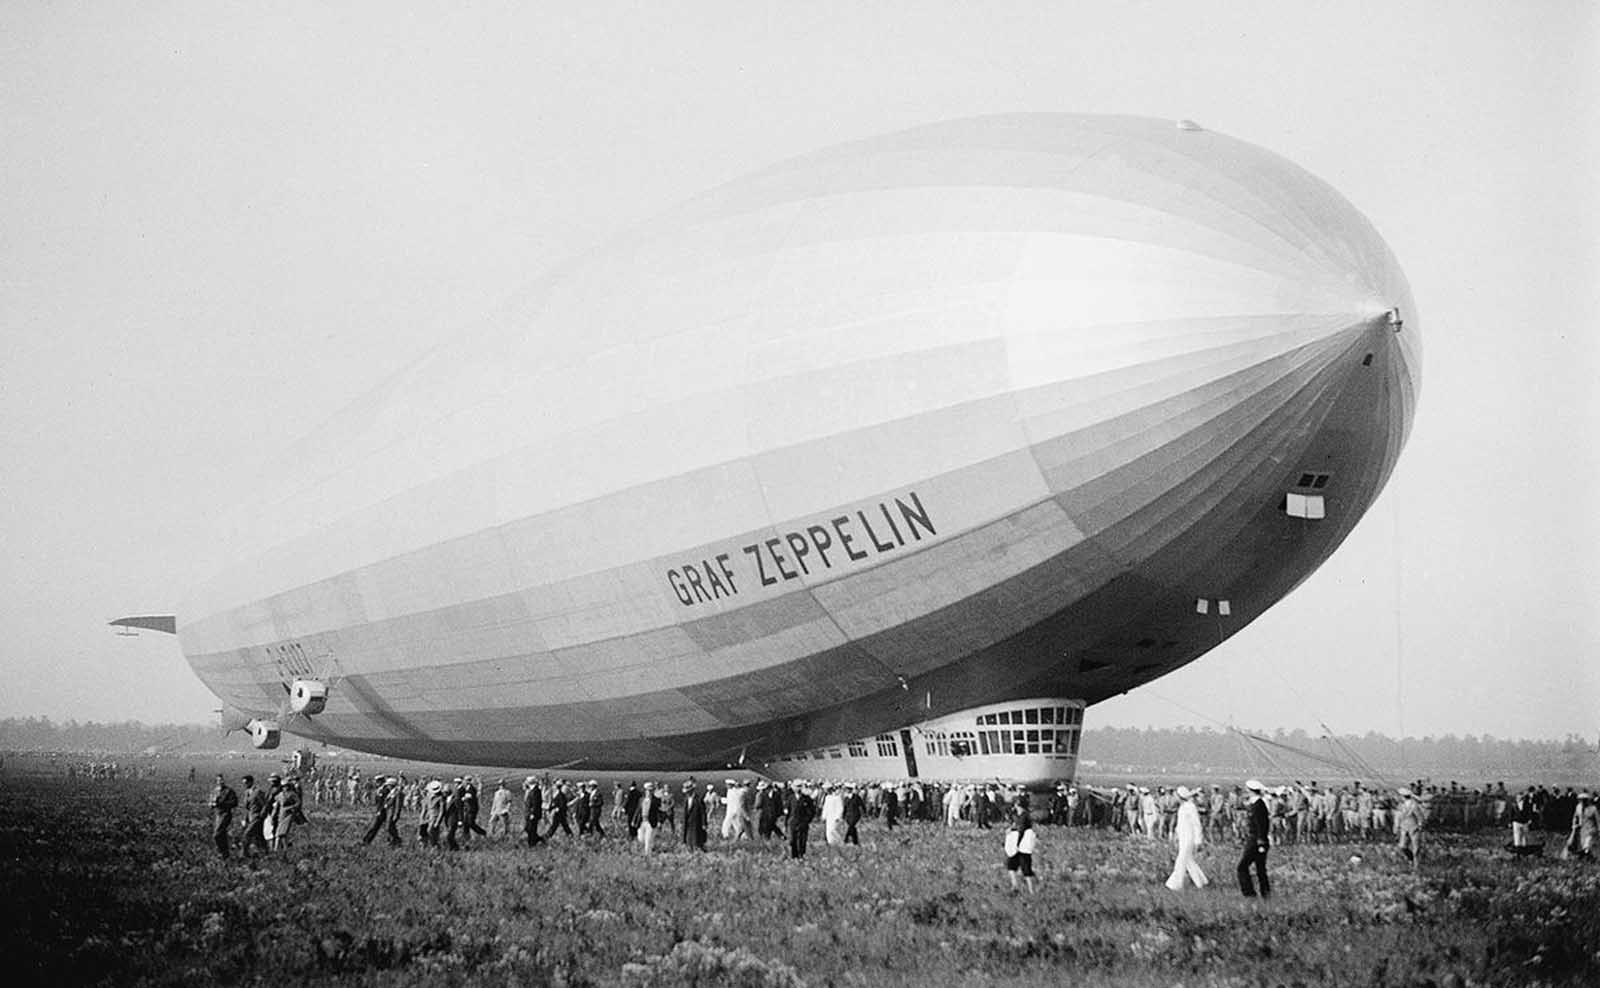 The giant German dirigible Graf Zeppelin, at Lakehurst, New Jersey, on August 29, 1929.